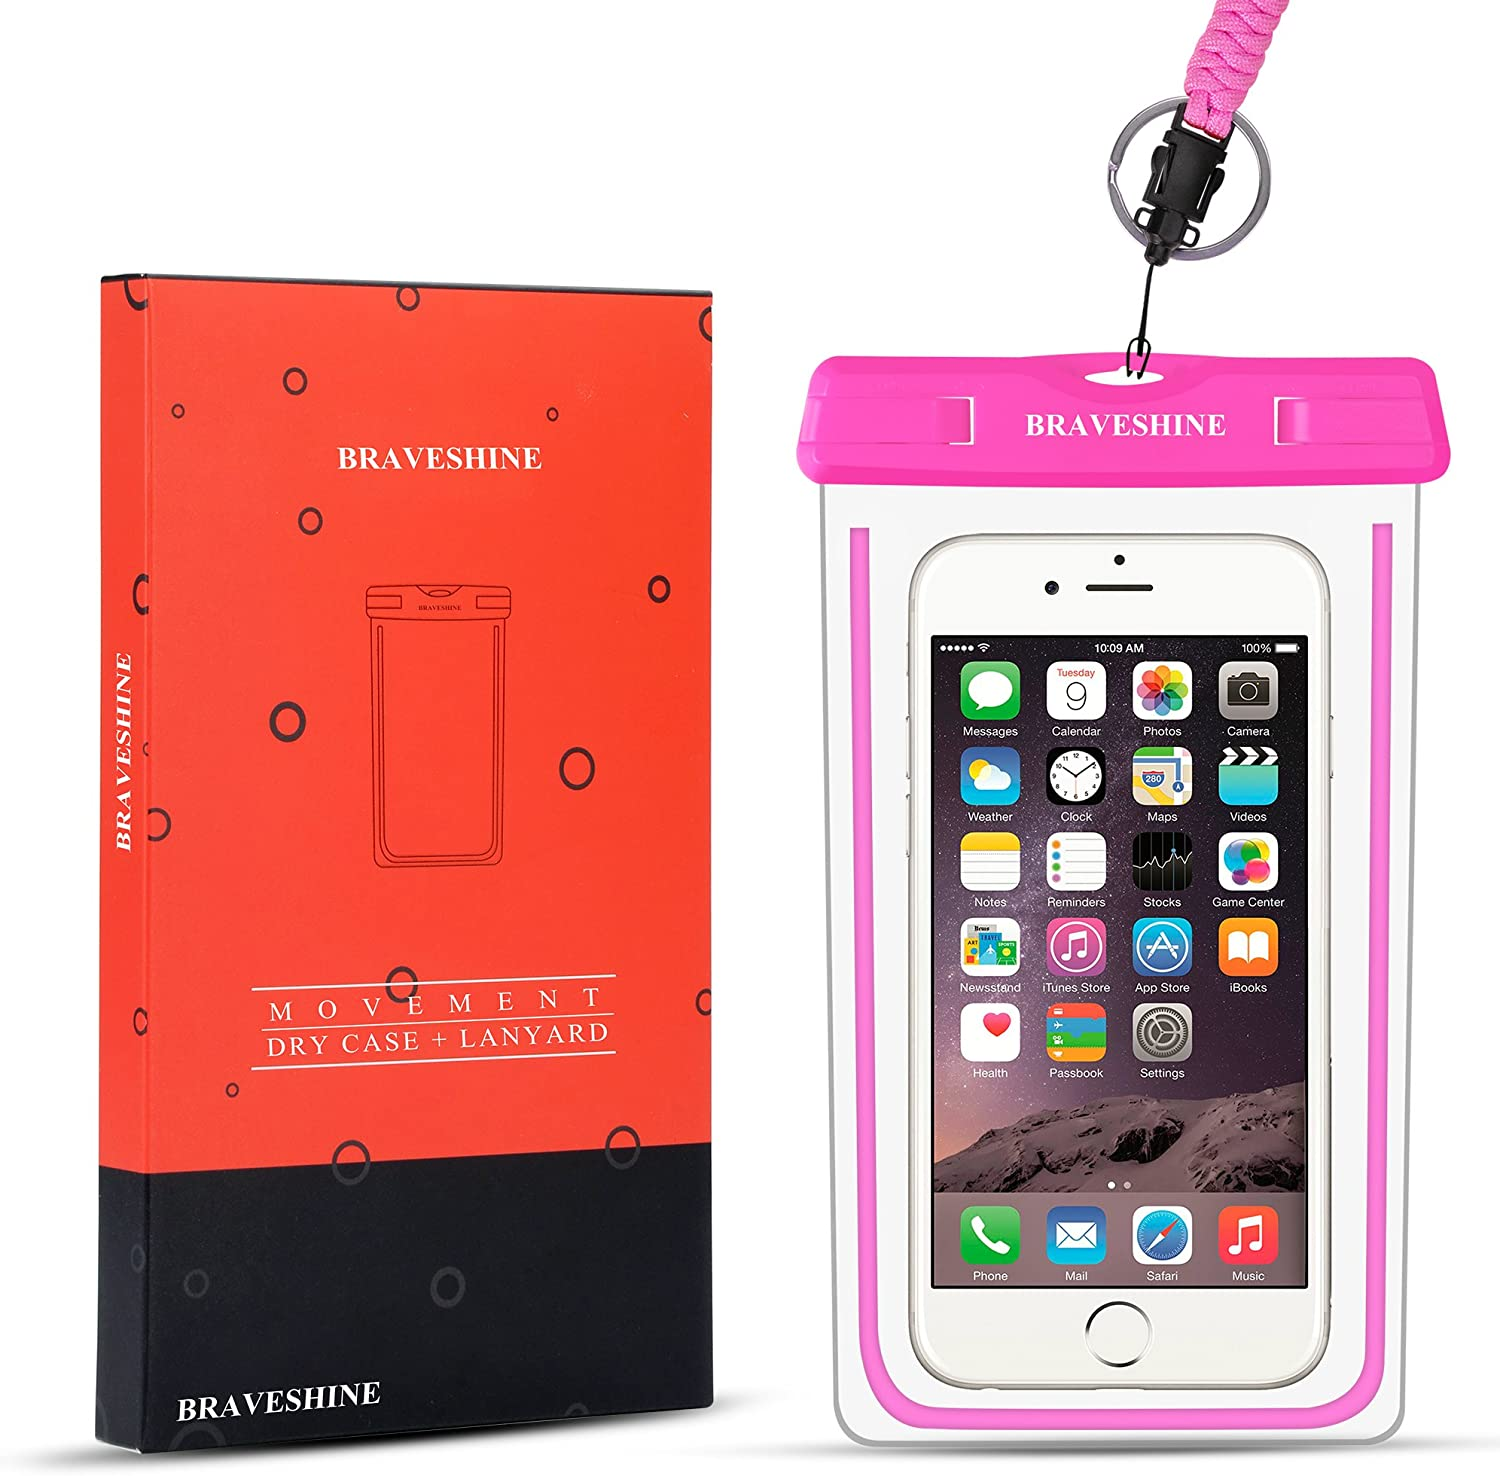 Pink BRAVESHINE Waterproof Cell Phone Pouch Universal Waterproof Case Phone Dry Bag for Boating Kayaking Surfing Snorkeling Water Sports for iPhone Xs Max XR XS X 6 7 8 Plus Galaxy S8 S7 Edge LG